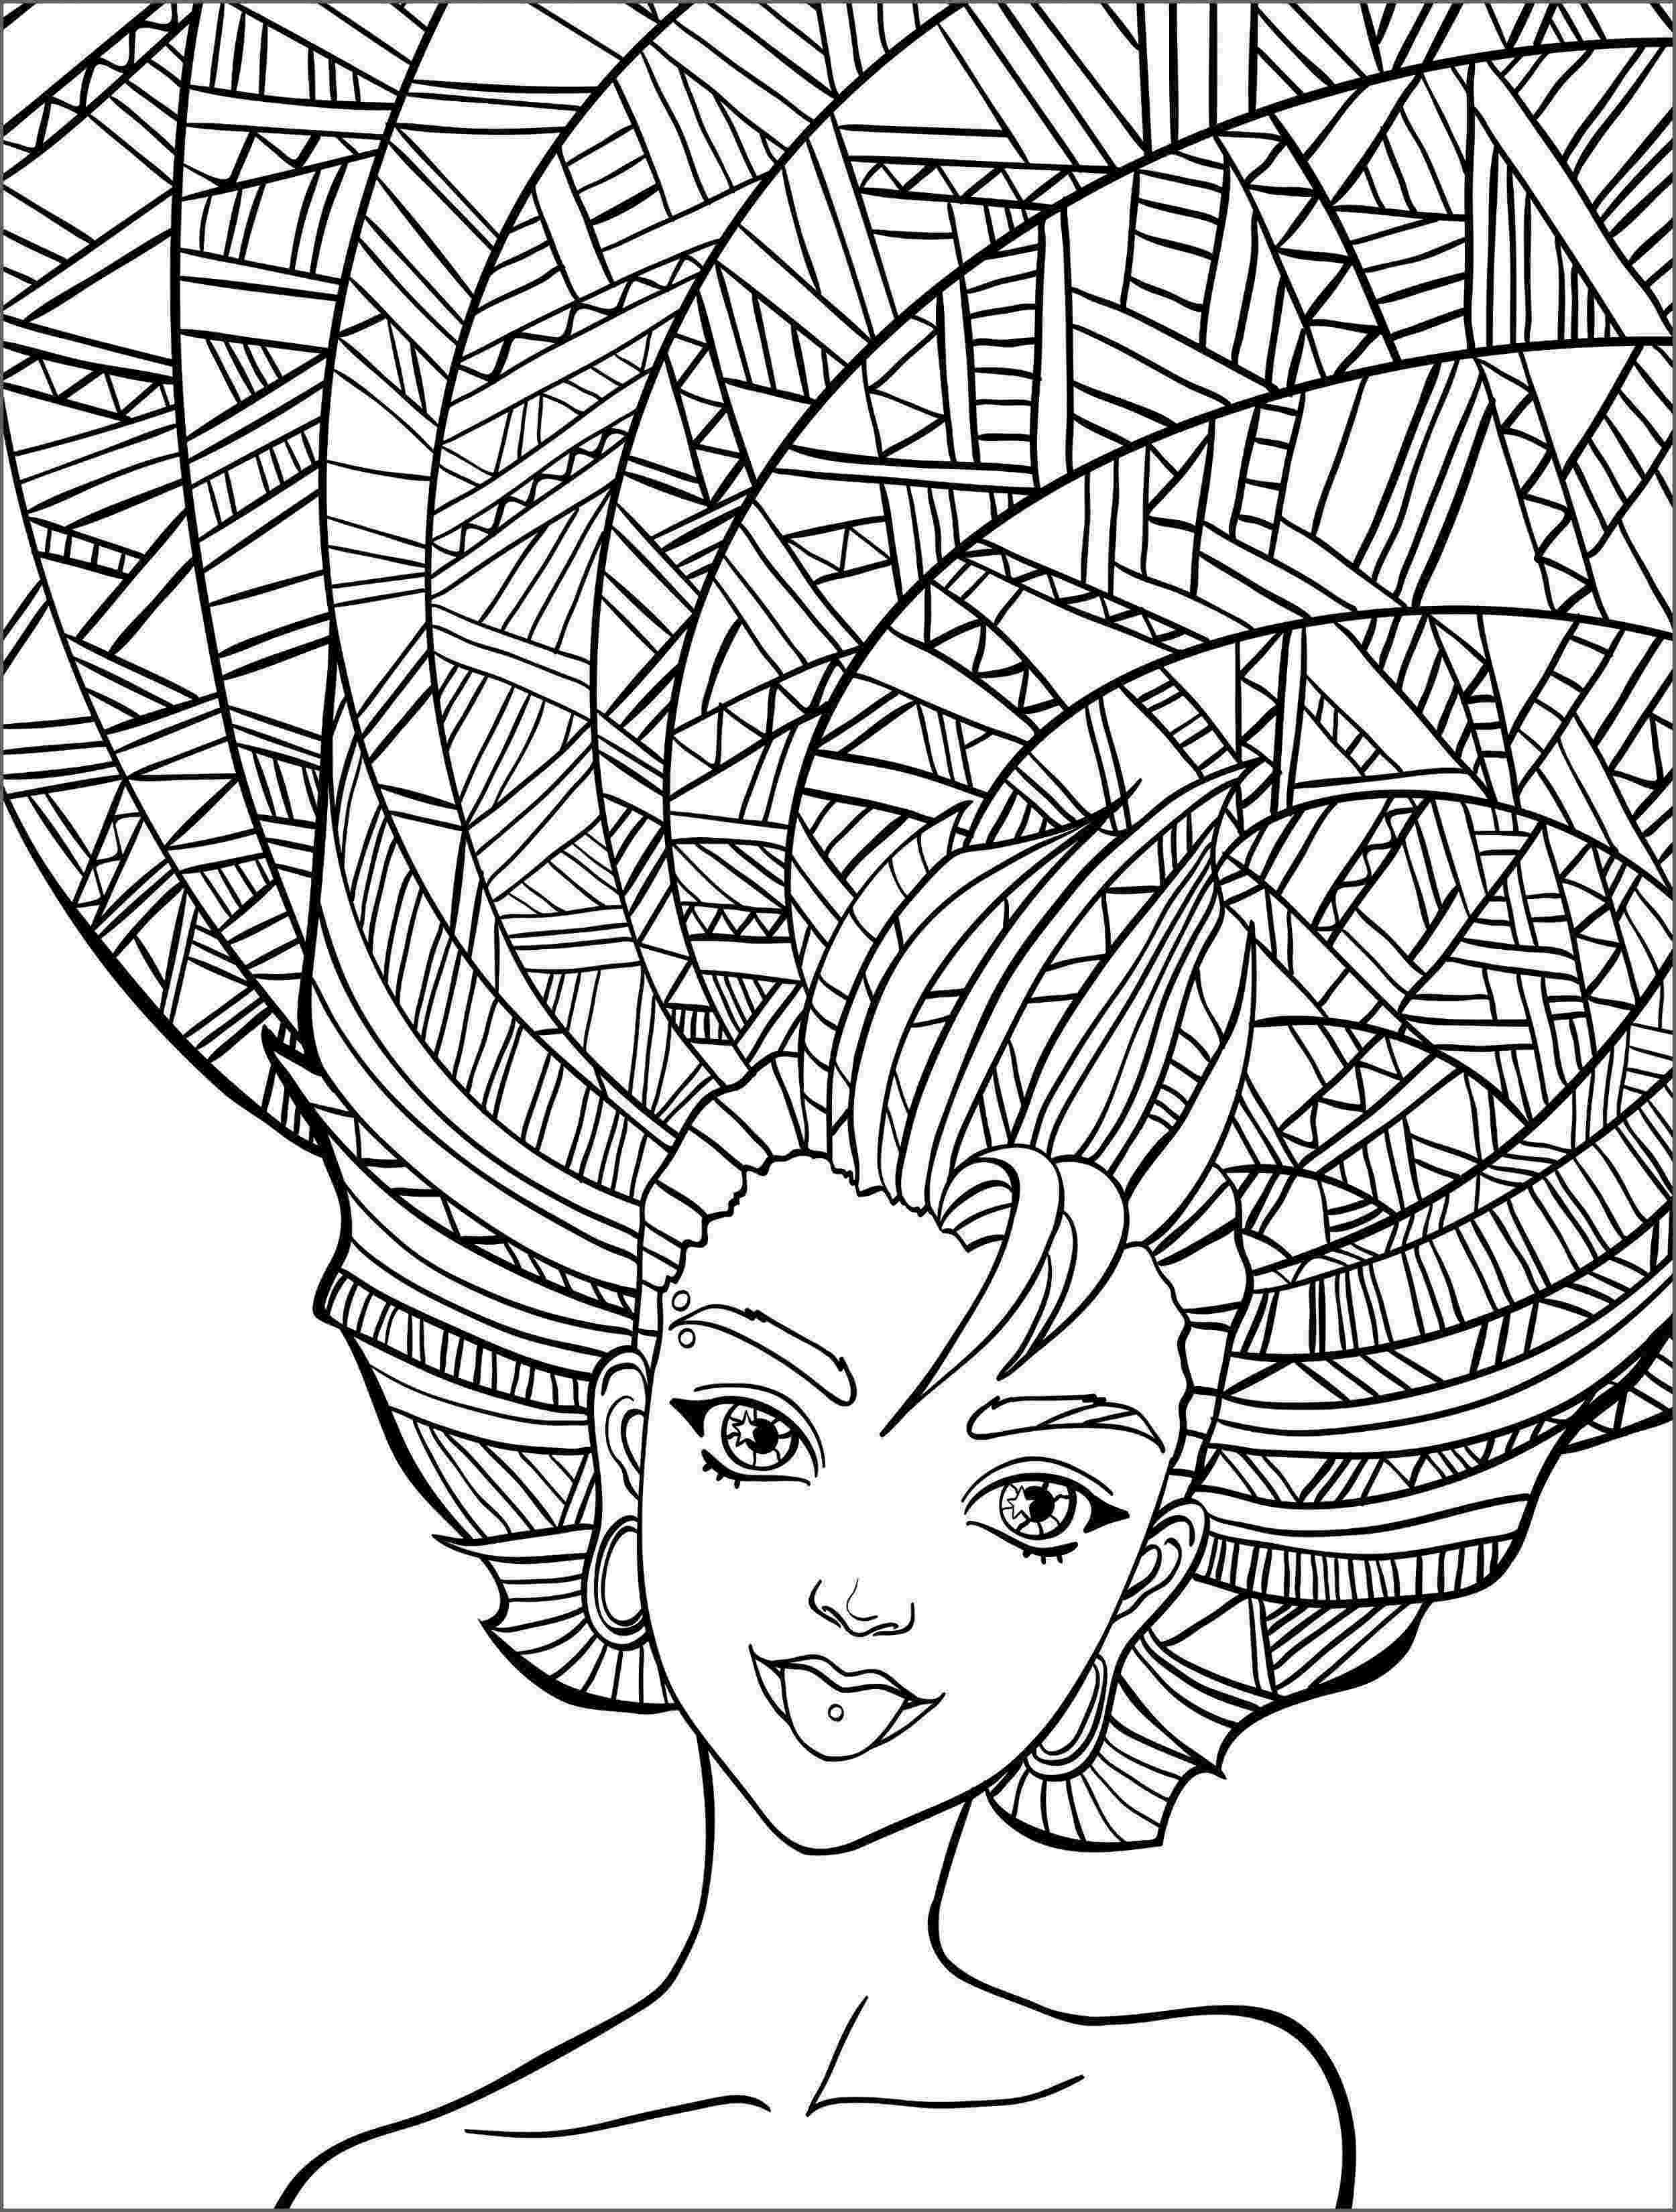 free coloring pages adults online free adult coloring pages my 15 favorites diy candy coloring adults free pages online